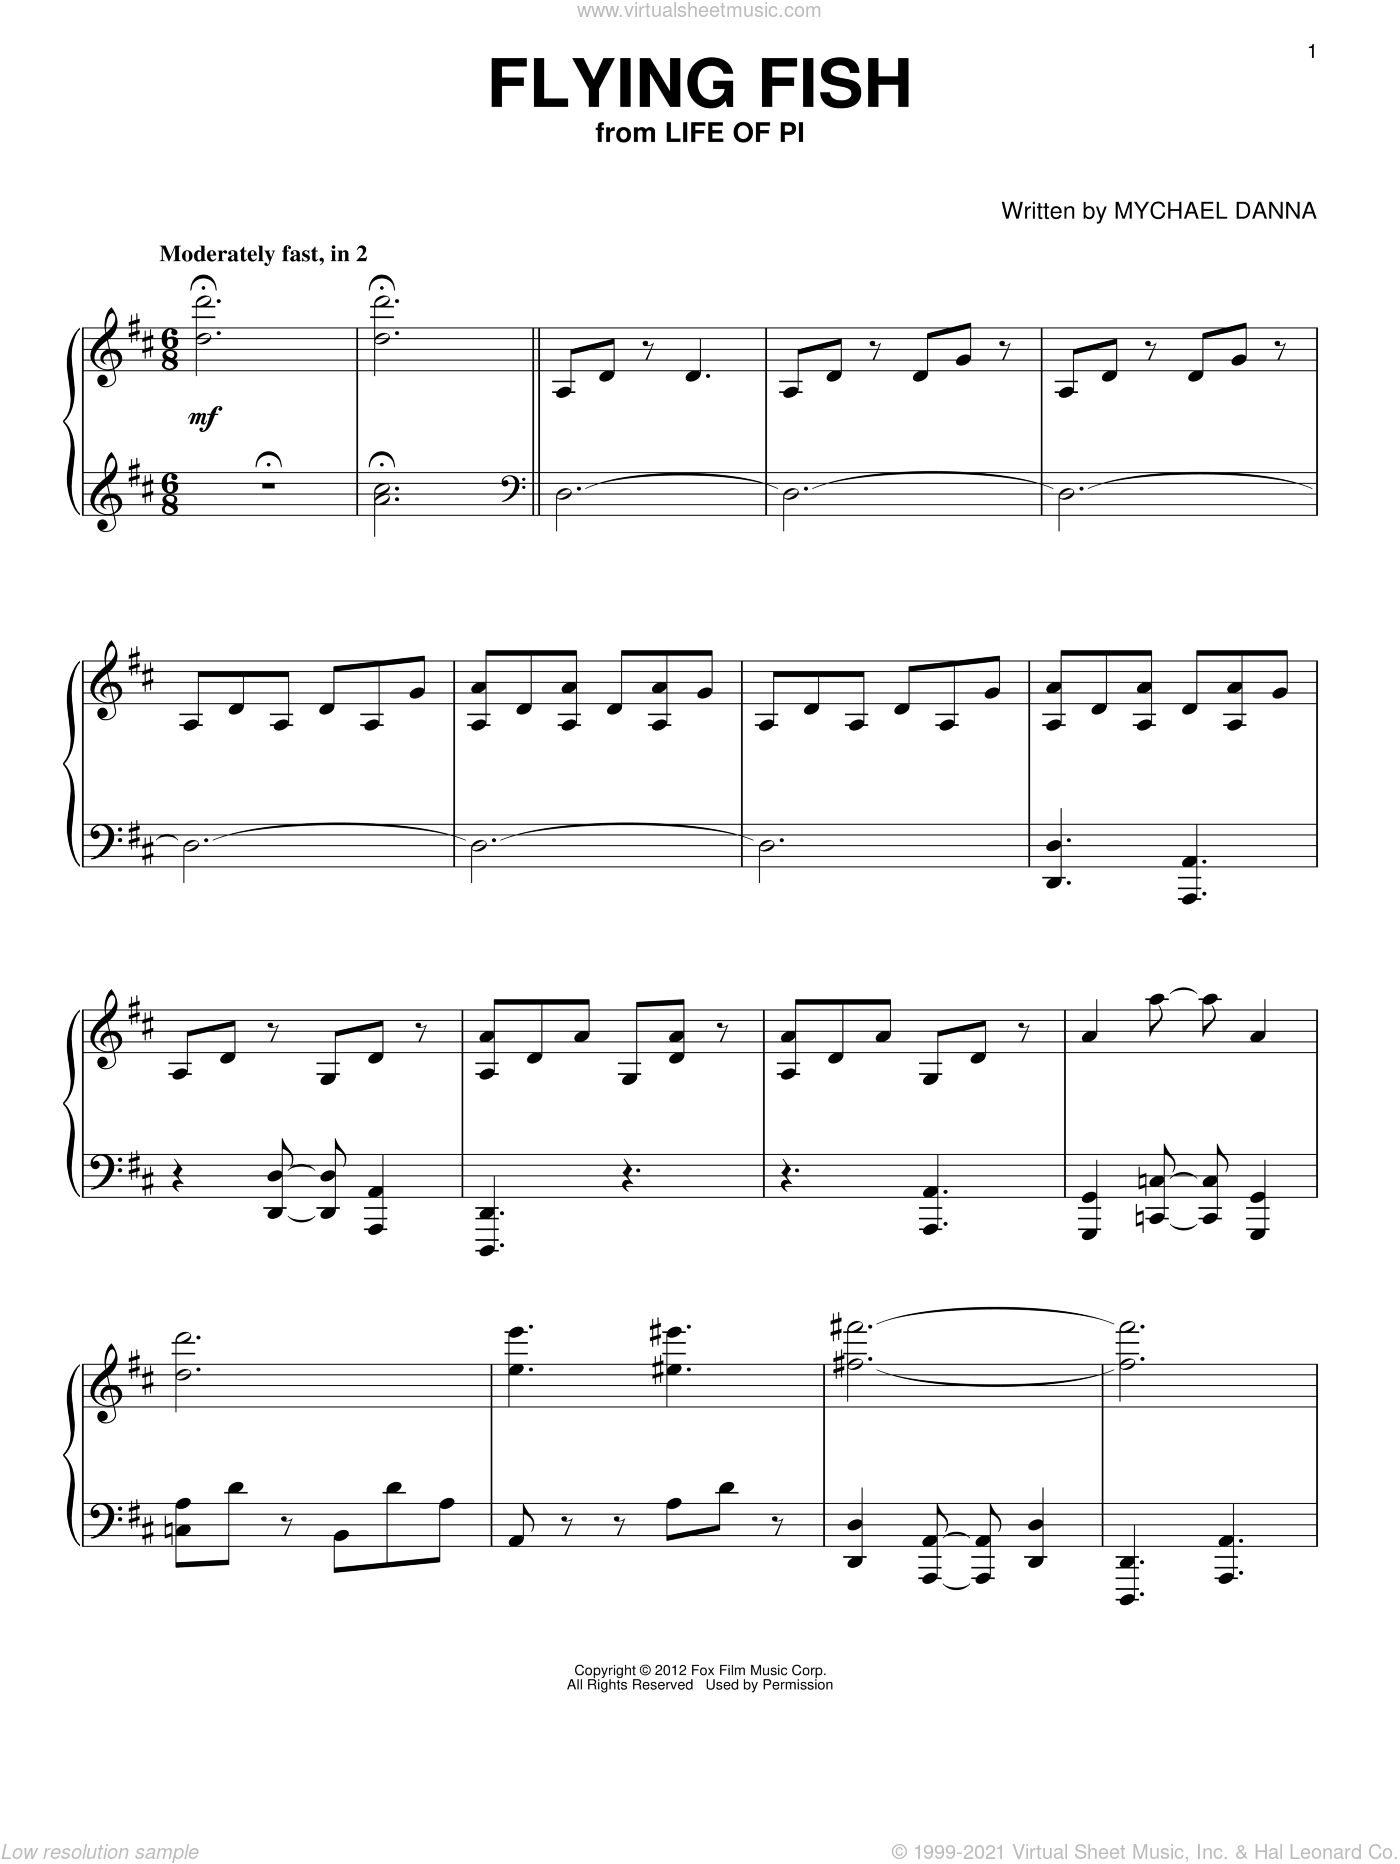 Flying Fish sheet music for piano solo by Mychael Danna